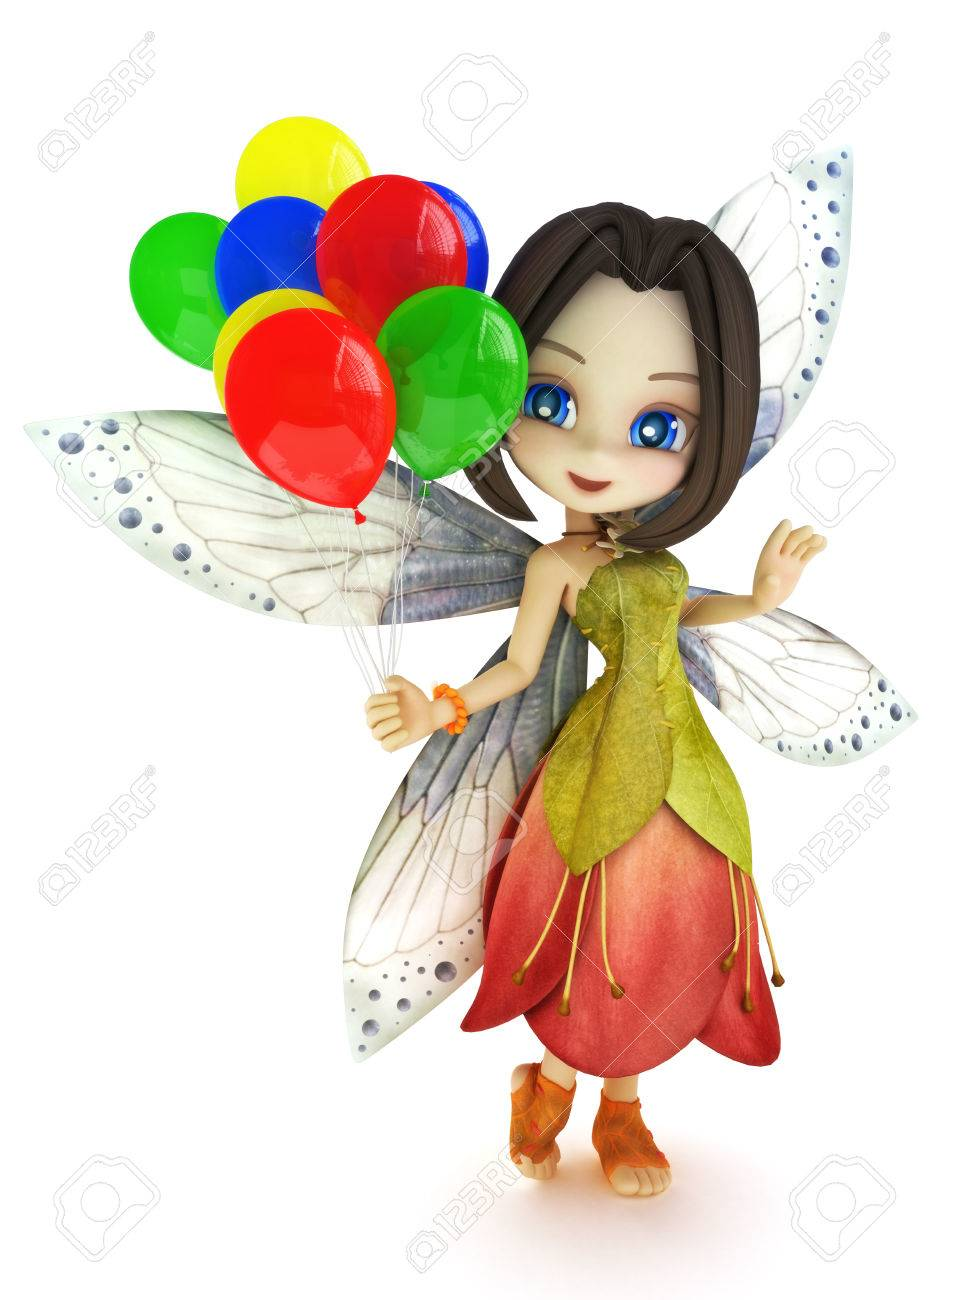 cute toon fairy with wings smiling holding balloon u0027s on a white